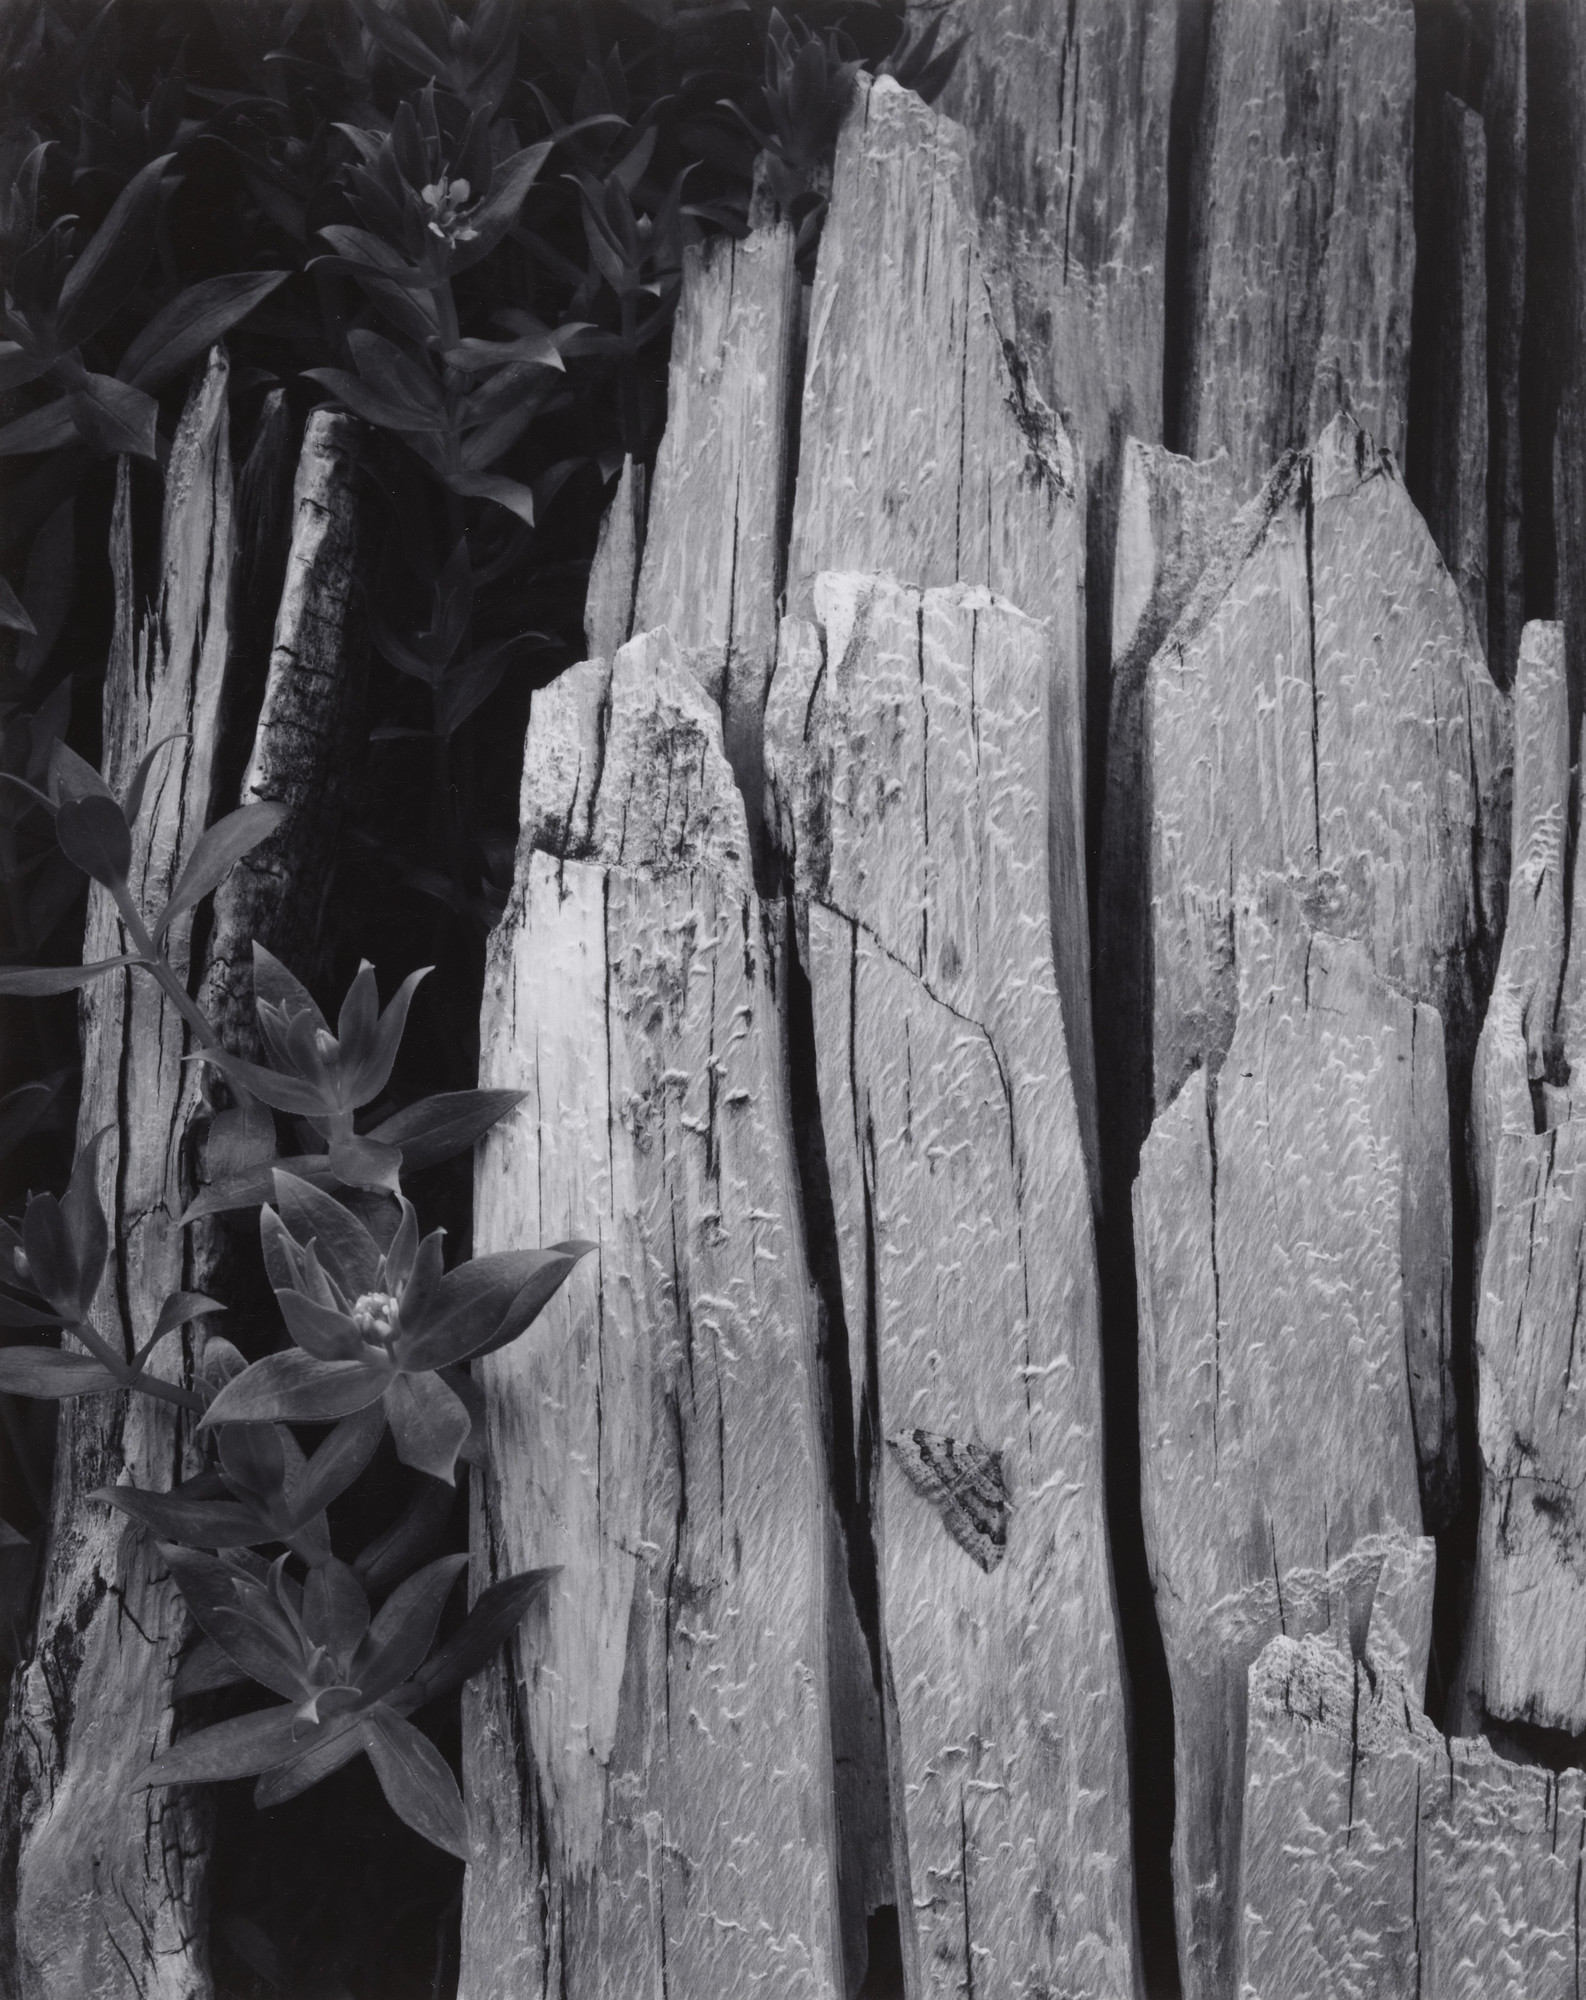 Ansel Adams. Moth and Stump, Interglacial Forest, Glacier Bay National Monument, Alaska. 1949